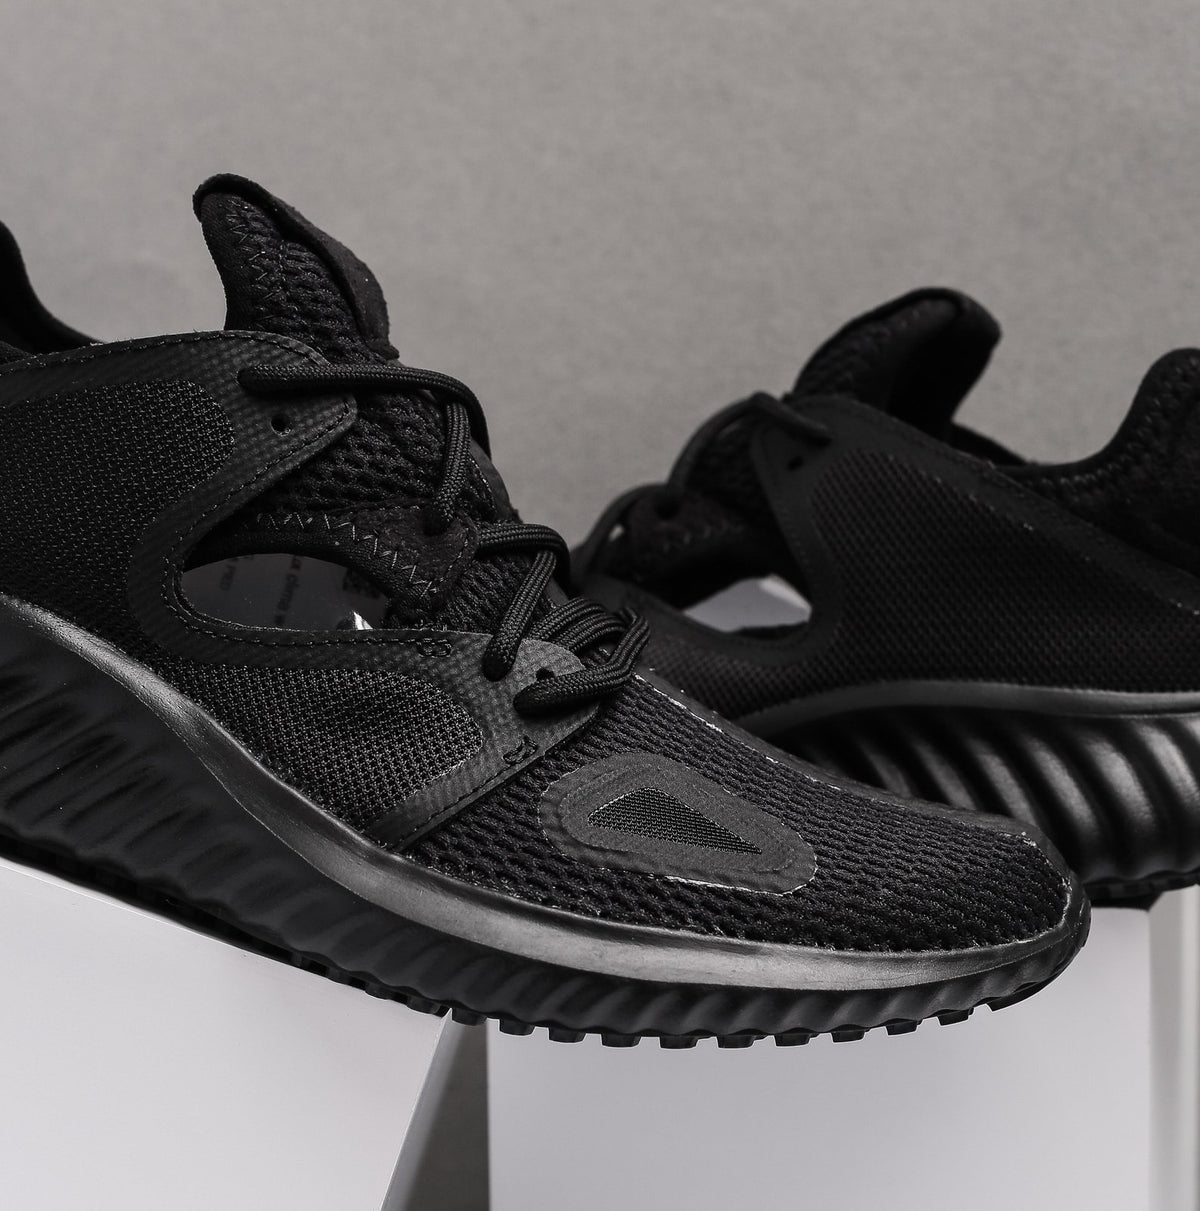 ADIDAS RUN LUX CLIMA W - Oneness Boutique